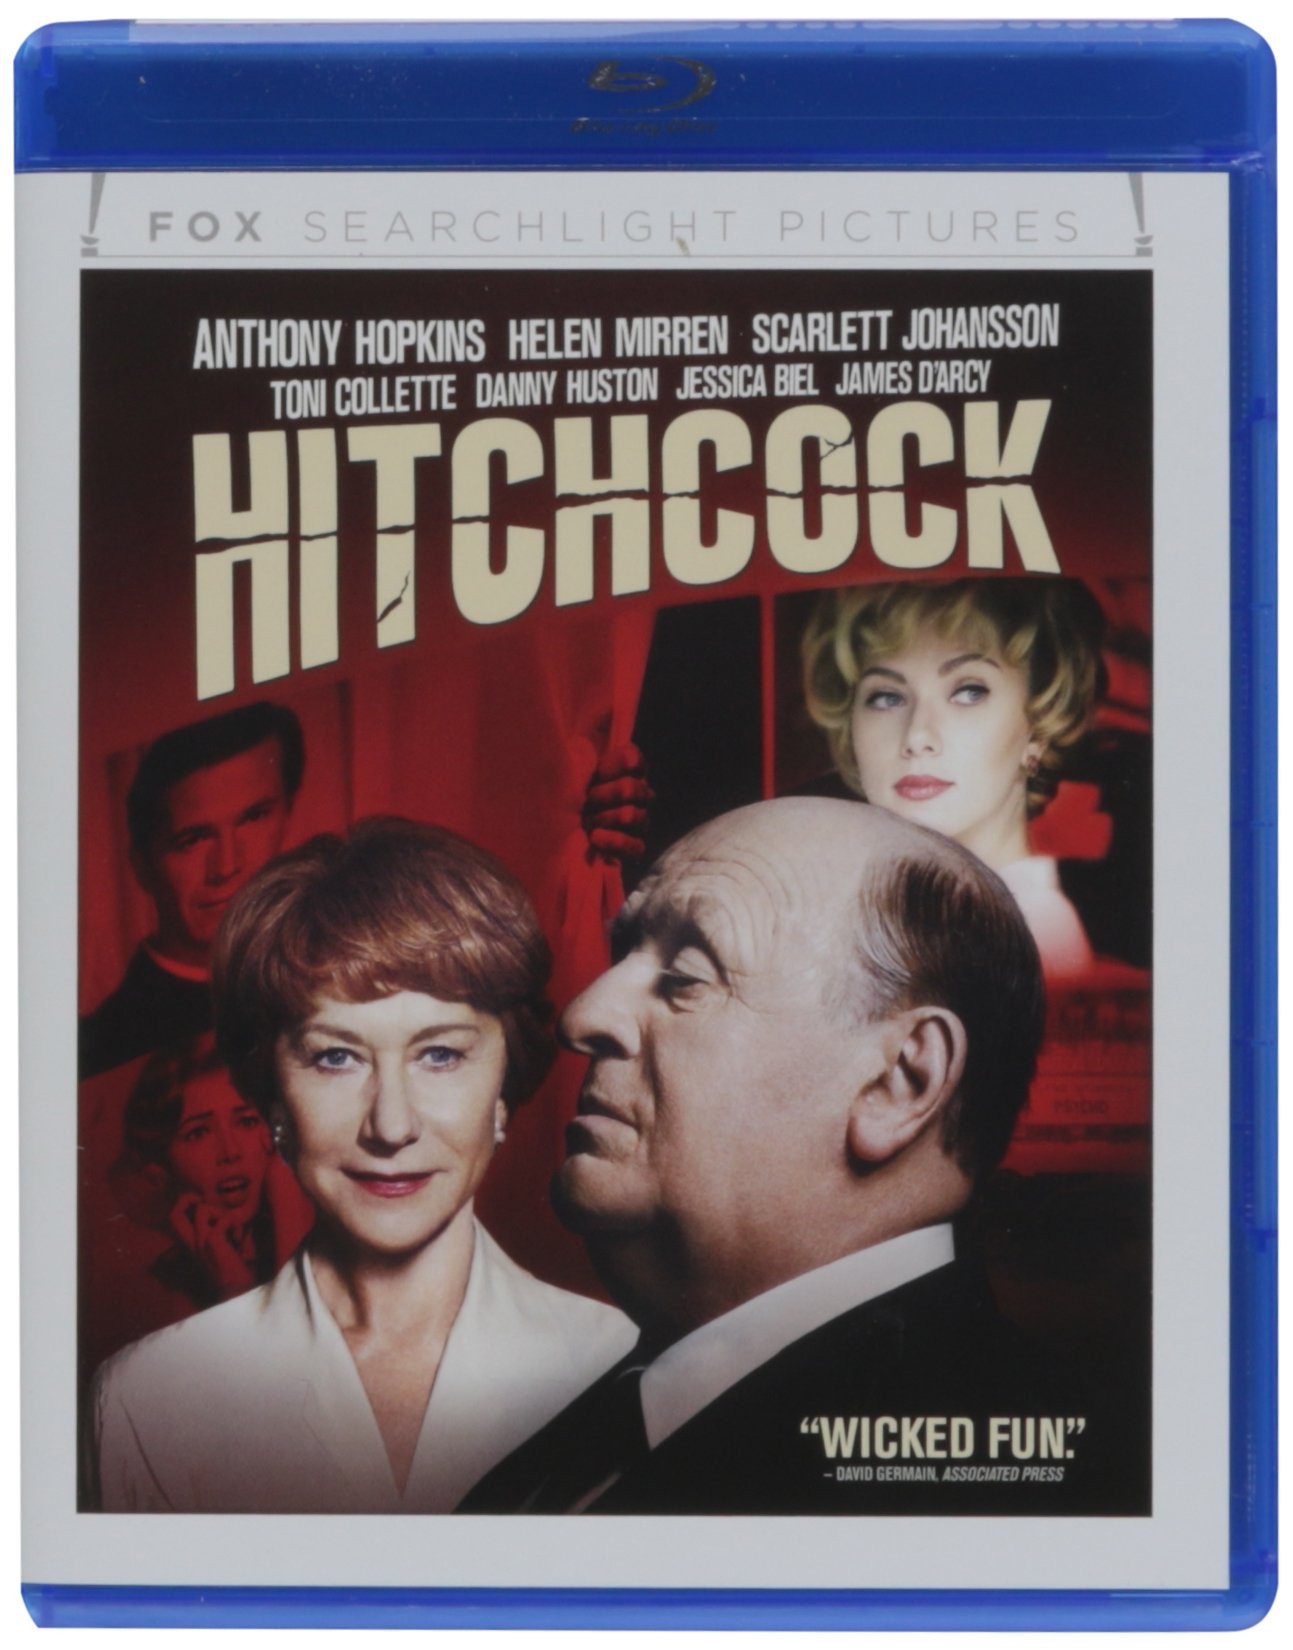 Blu-ray : Hitchcock (Pan & Scan)